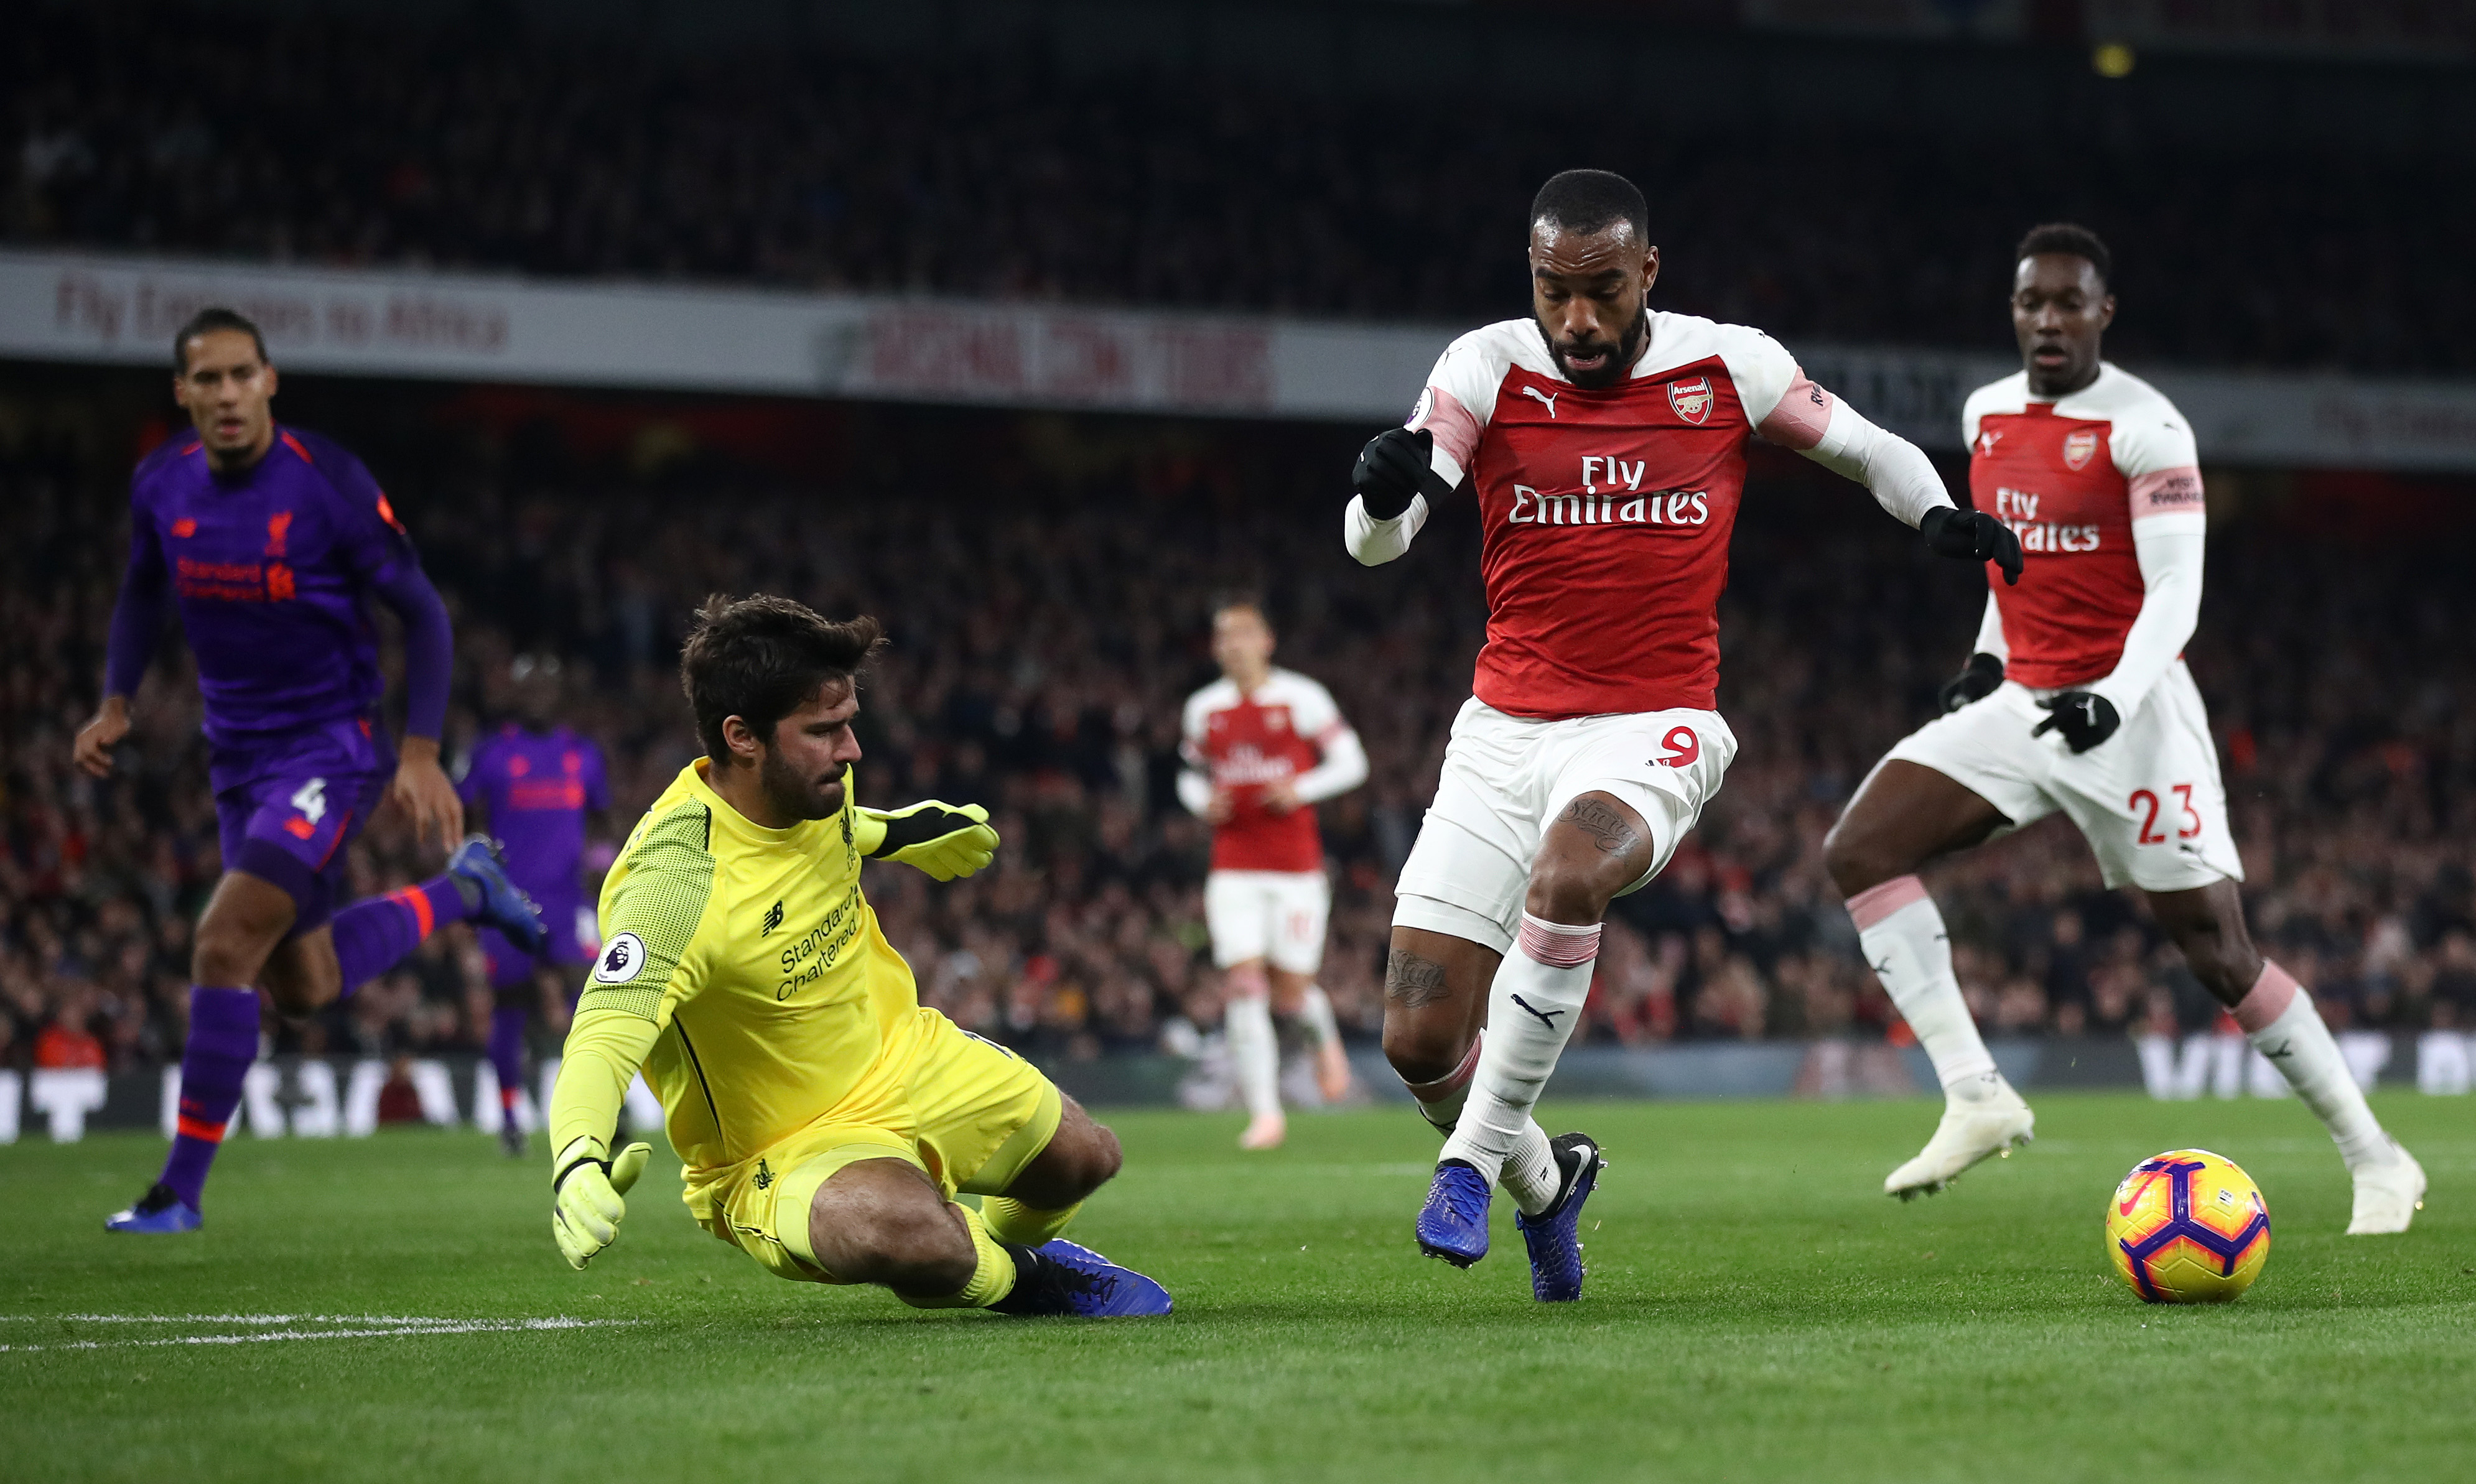 https://the18.com/sites/default/files/feature-images/20181103-The18-Image-Arsenal-vs-Liverpool-Highlights-GettyImages-1056939690.jpg